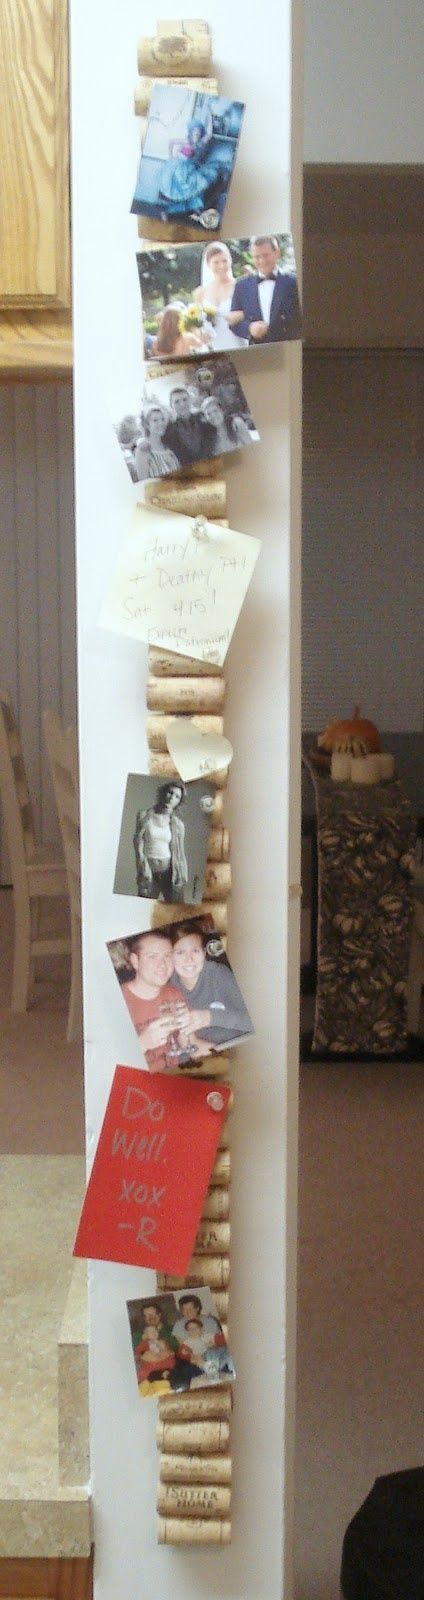 Put corks on a yard stick and you get a vertical cork board...I knew I was drinking all that wine for a reason ;)